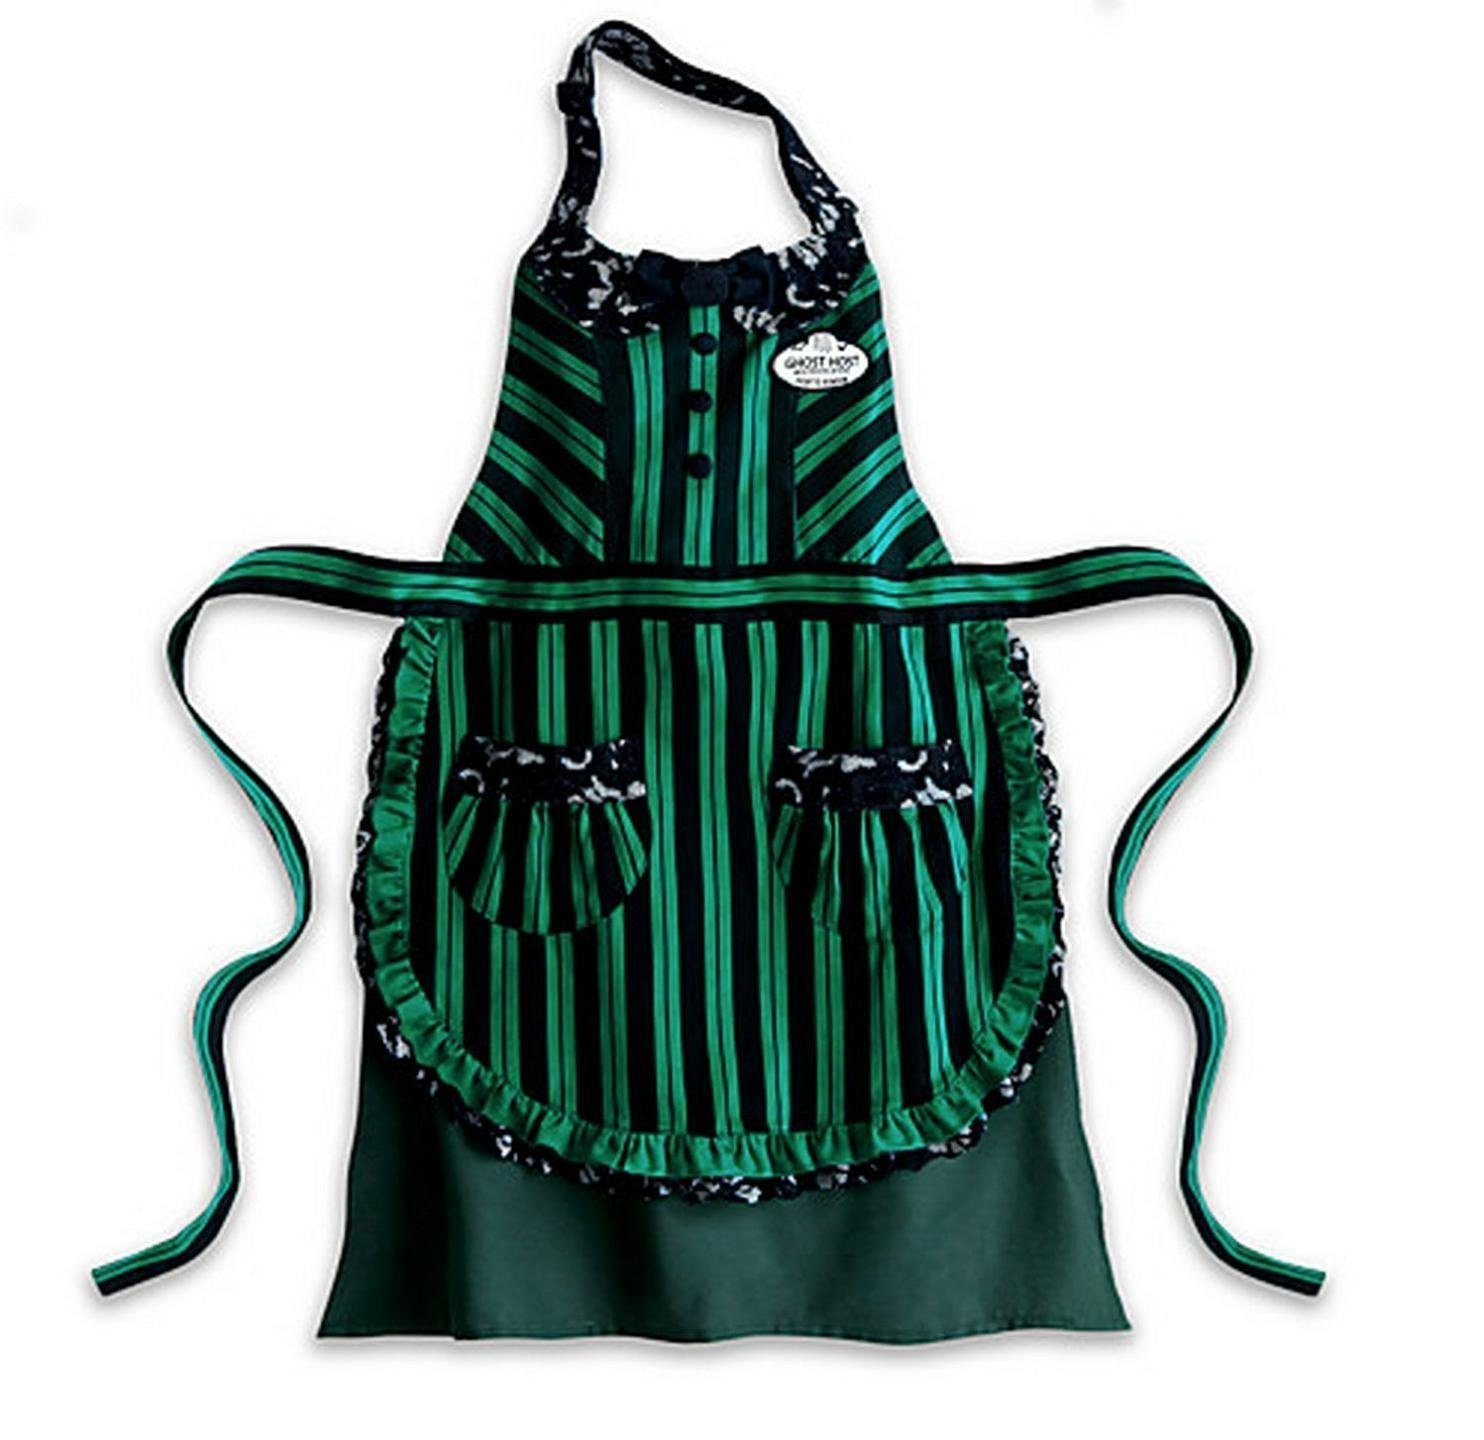 Disney Parks The Haunted Mansion Ghost Host Hostess Apron